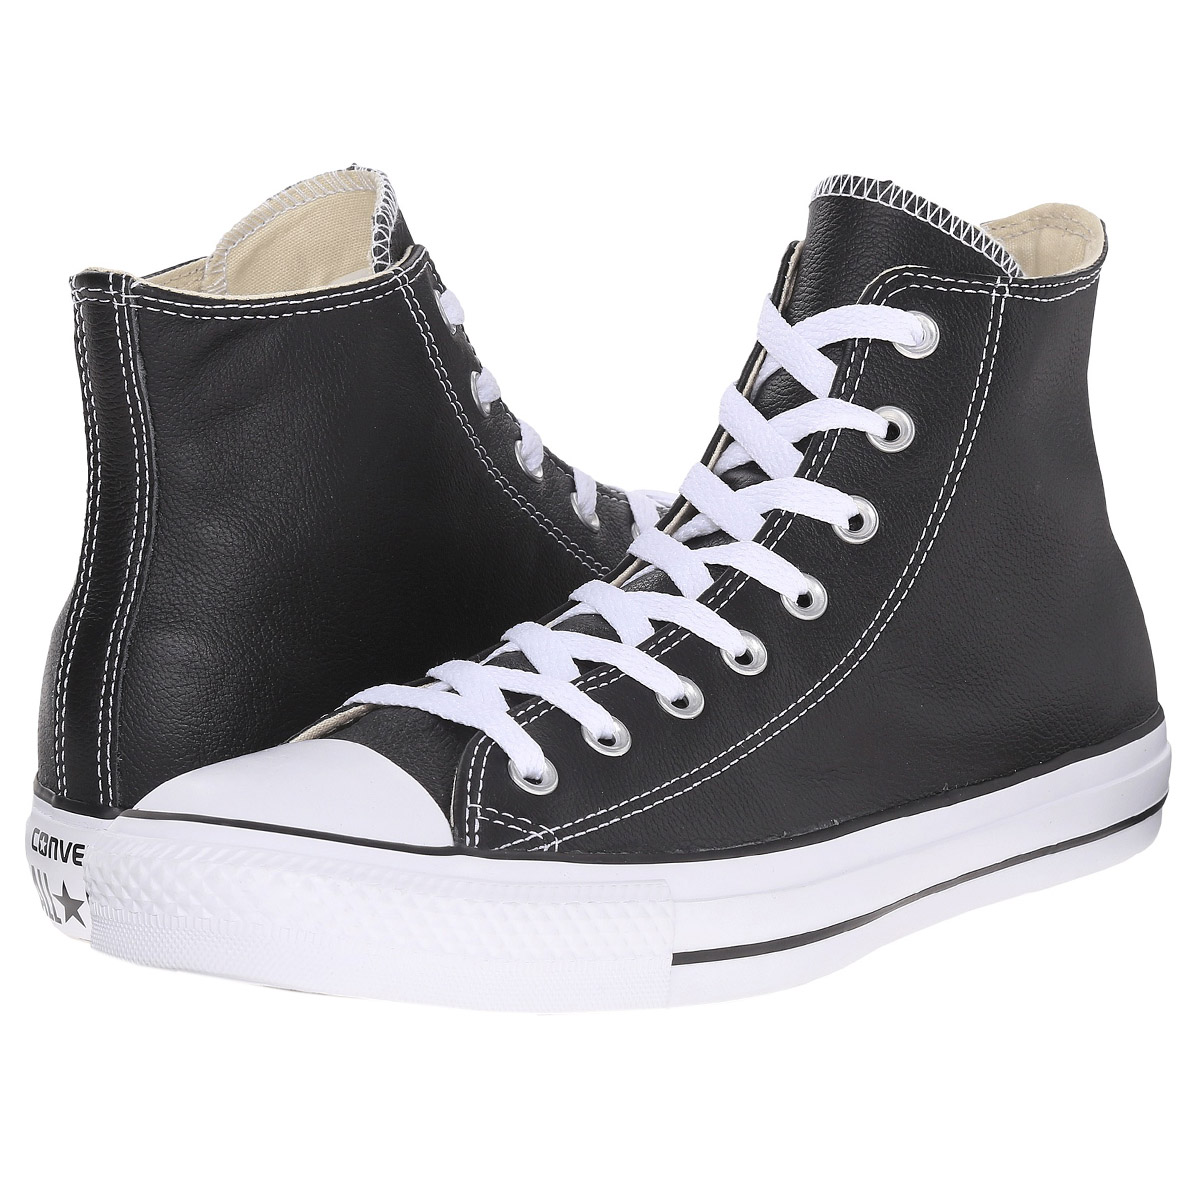 converse chucks hi leather damen schuhe schwarz leder. Black Bedroom Furniture Sets. Home Design Ideas